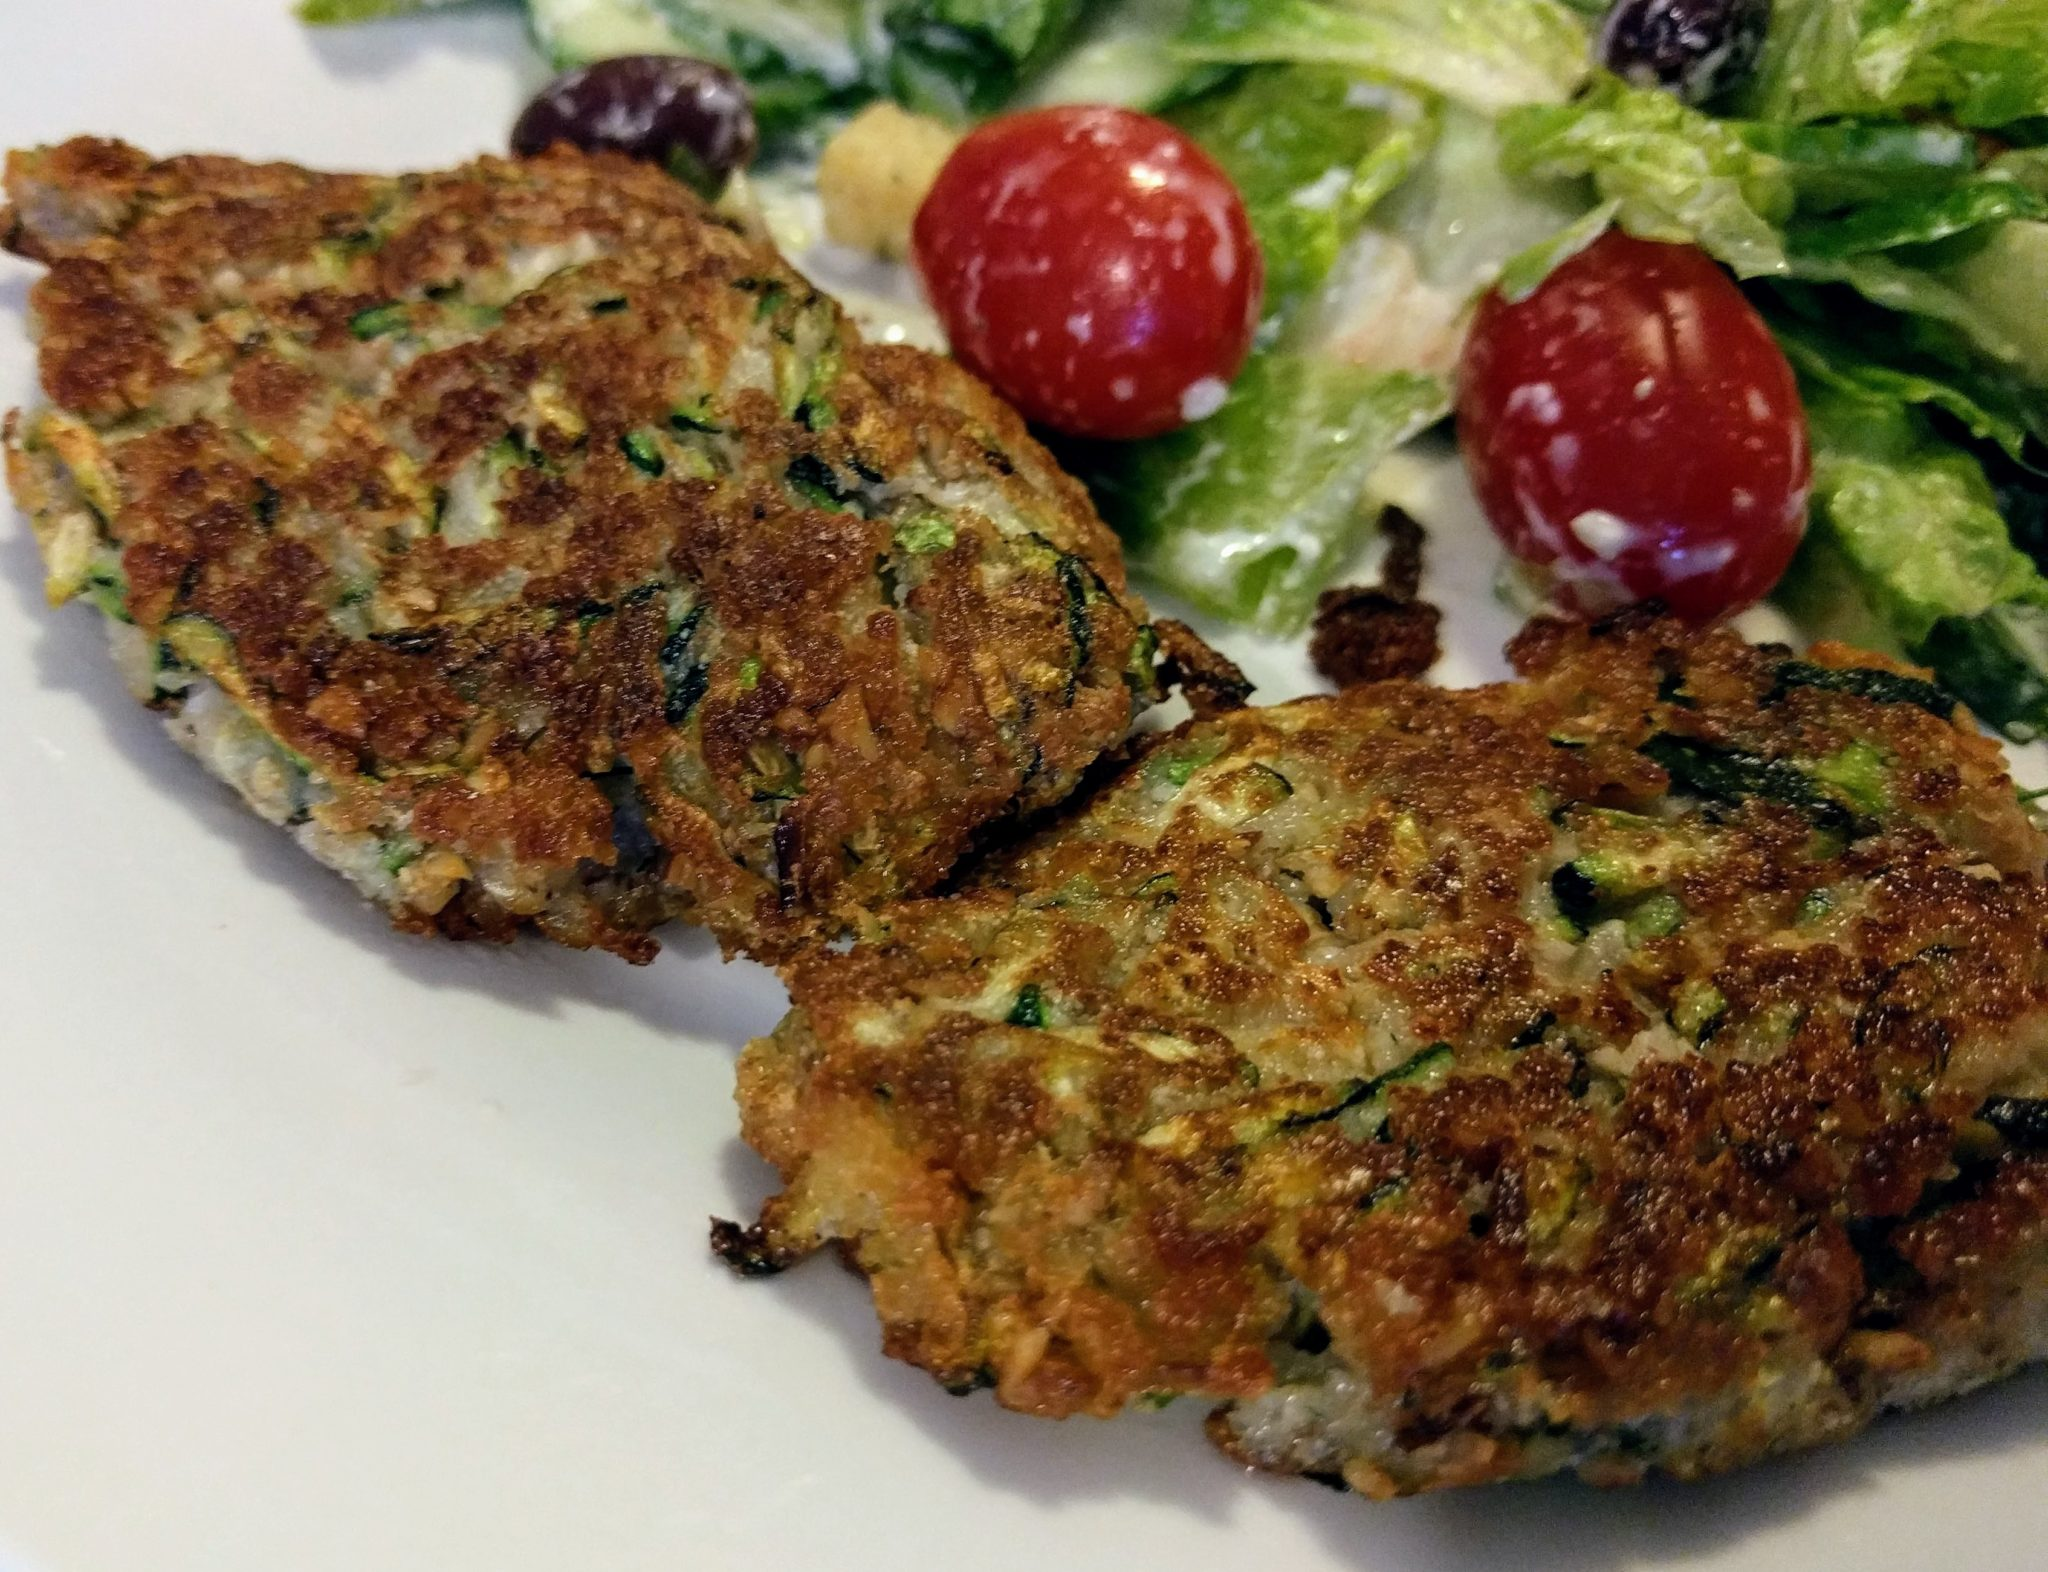 two zucchini fritters with a salad with lettuce and cherry tomatoes in the background